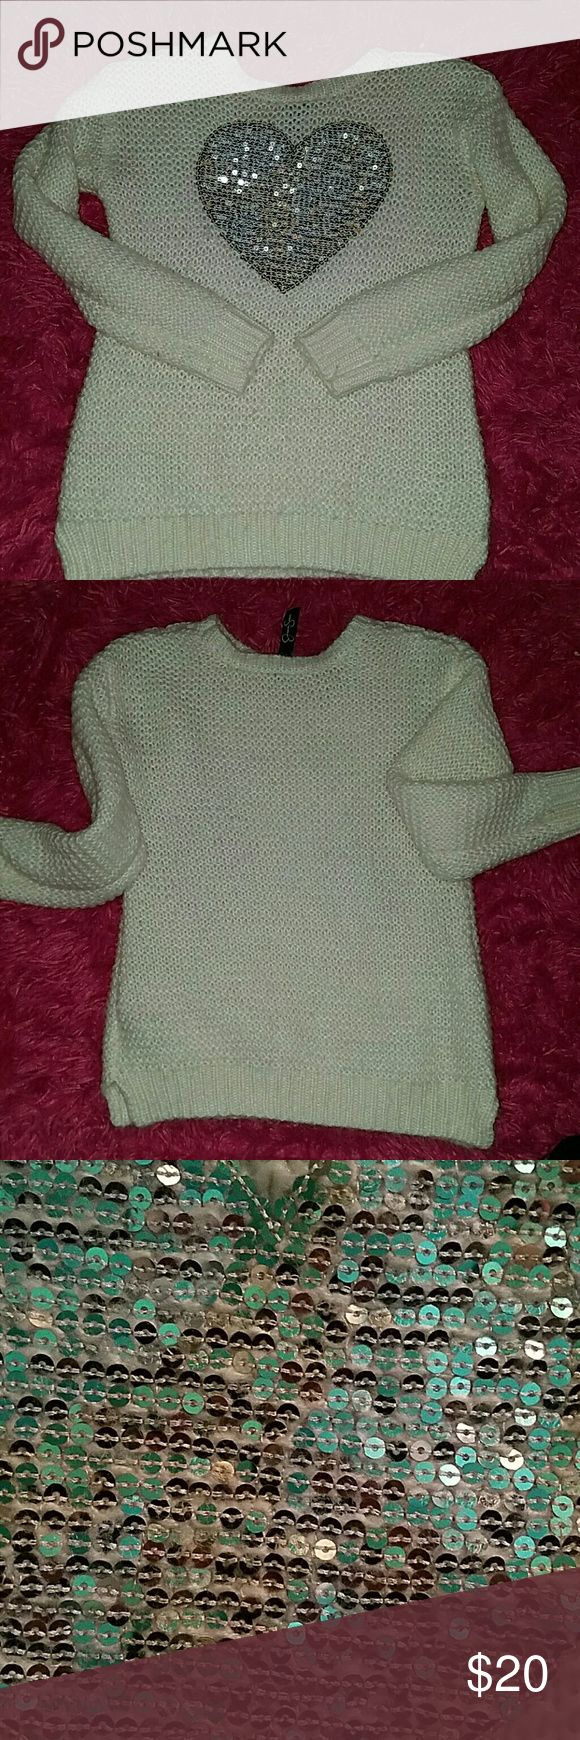 Jessica Simpson kids sweater Off white with silver sequin heart Jessica Simpson Shirts & Tops Sweatshirts & Hoodies